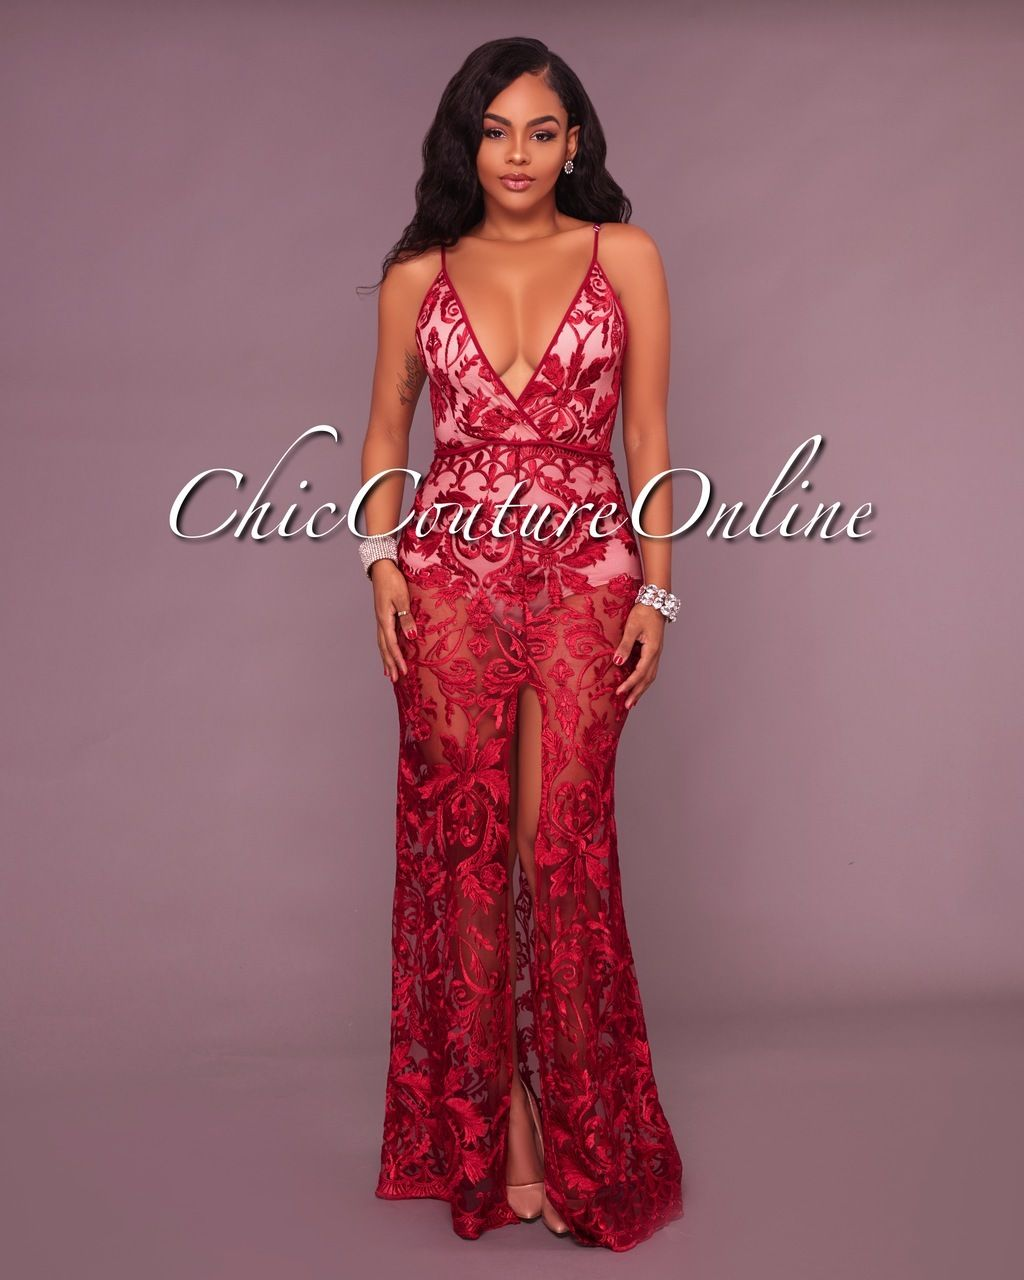 Pin On Clothing Chic Couture Online